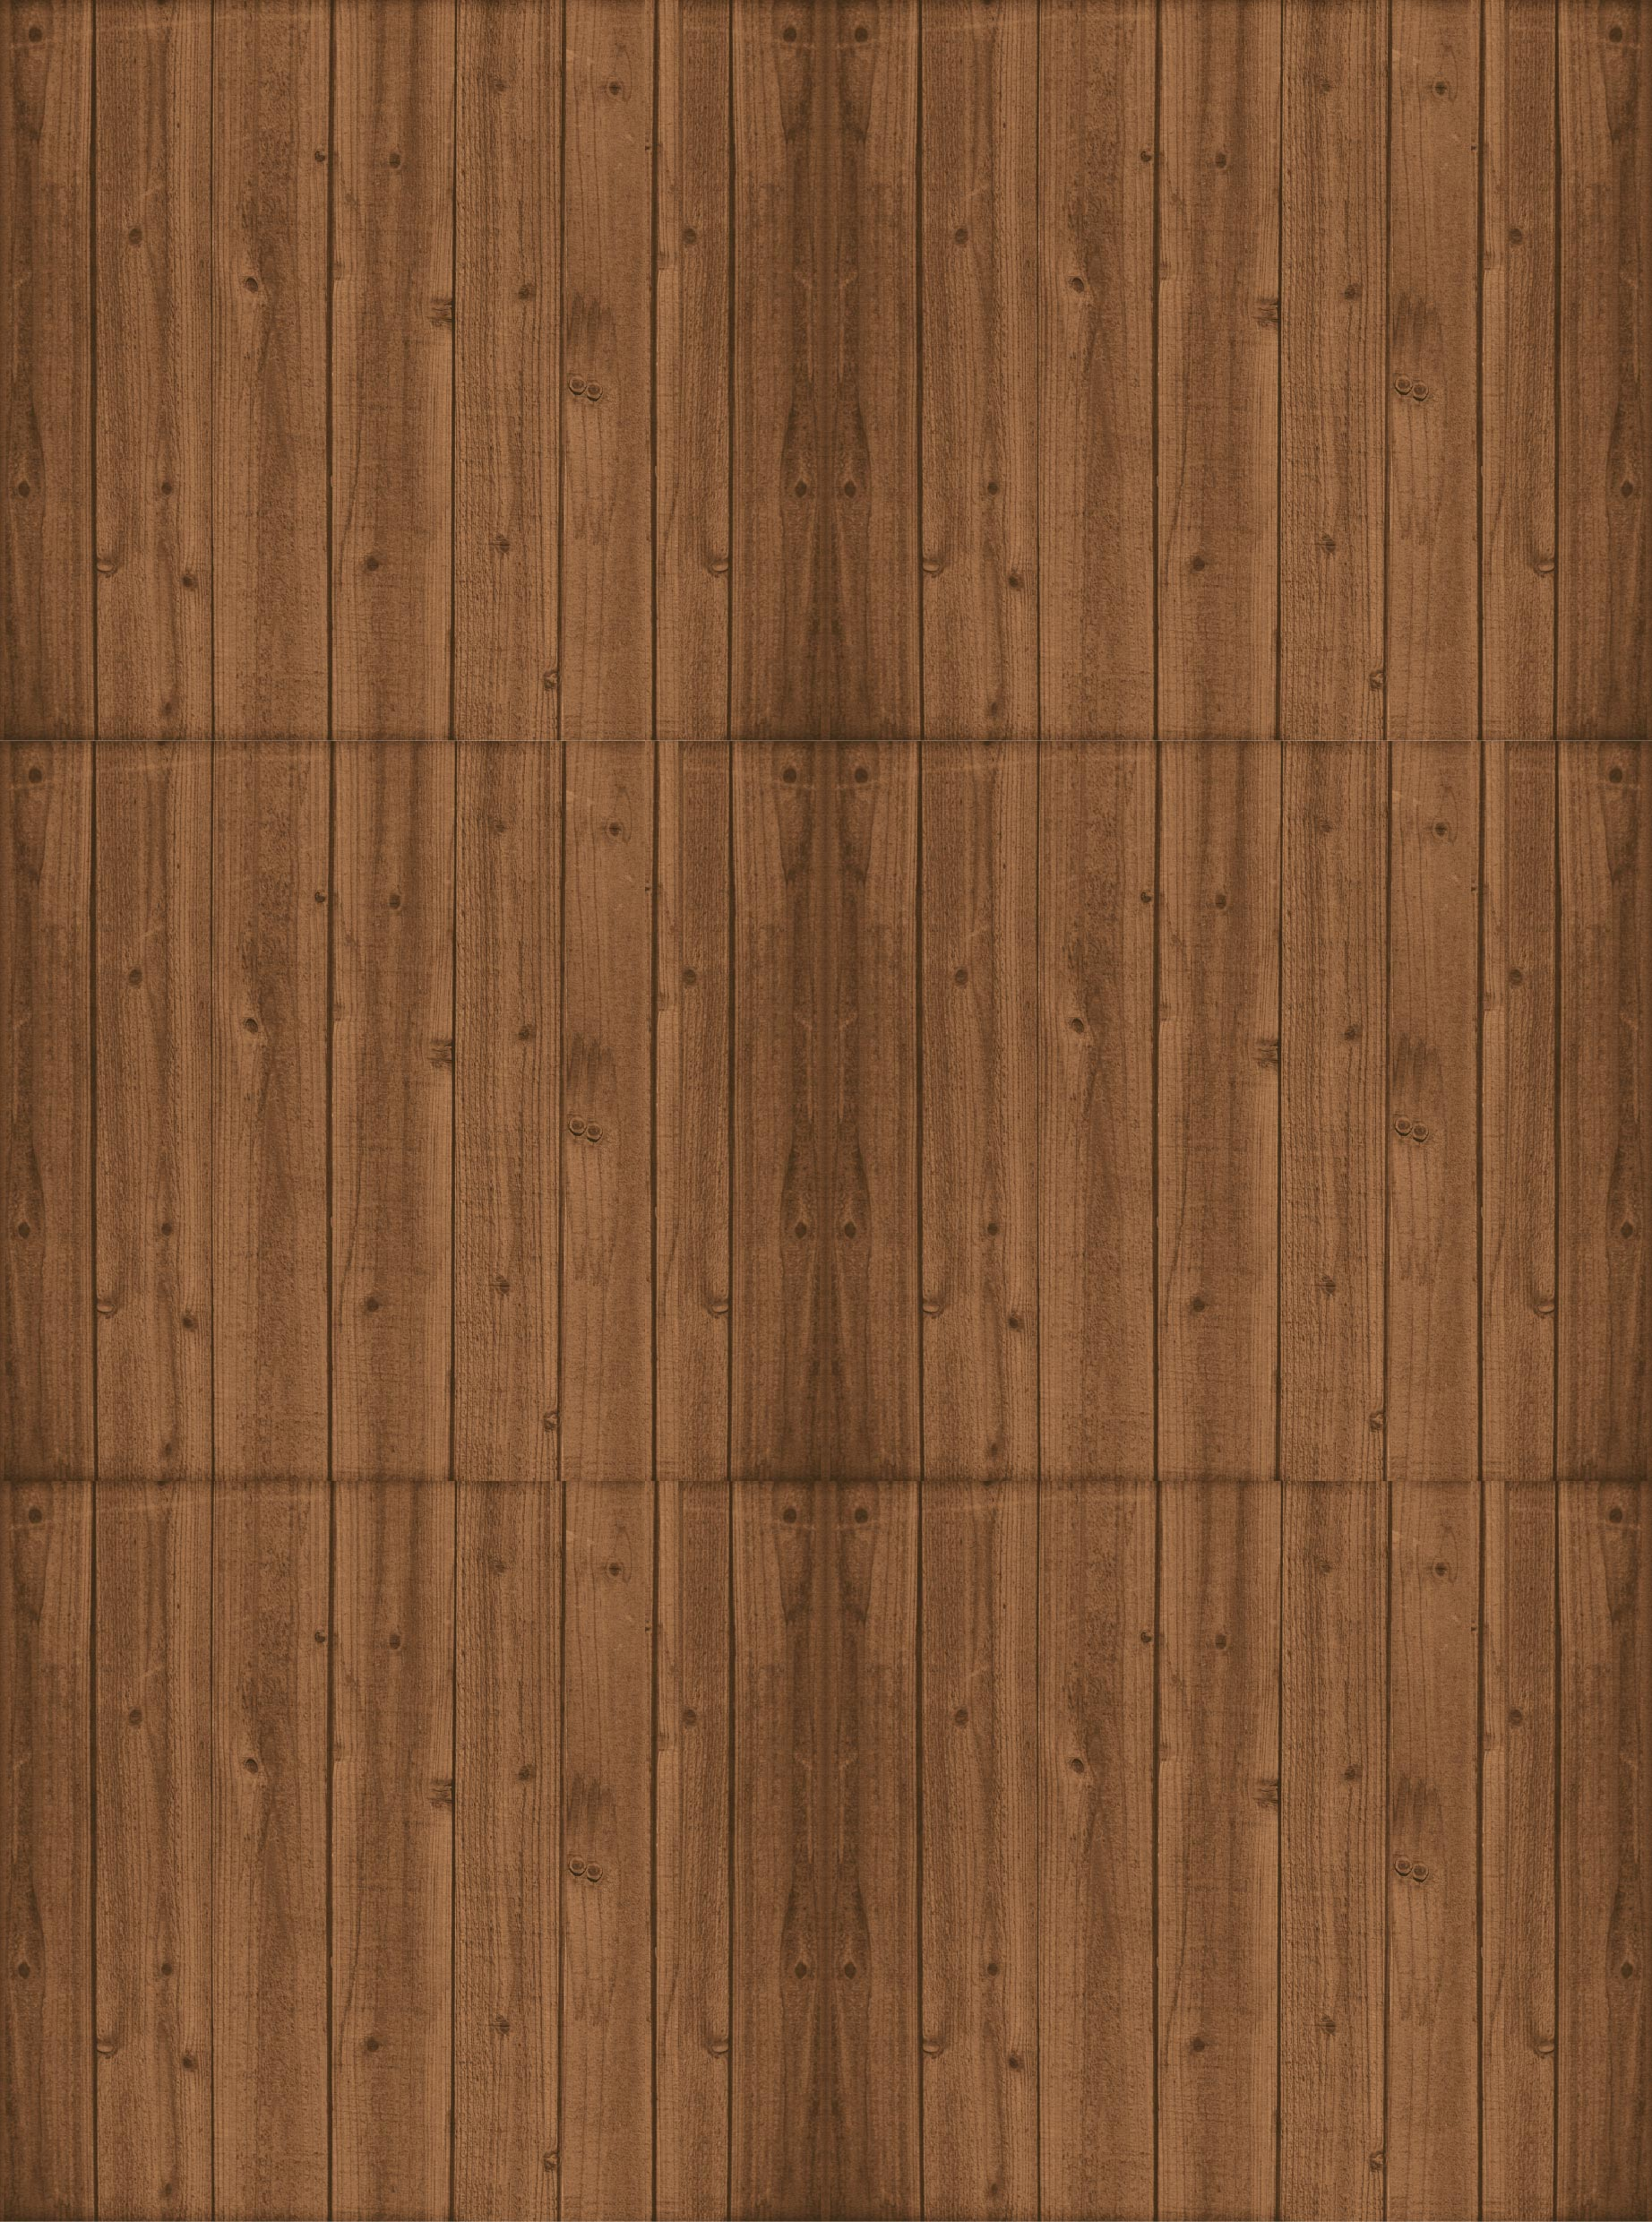 Background #3 (Walnut Wood)